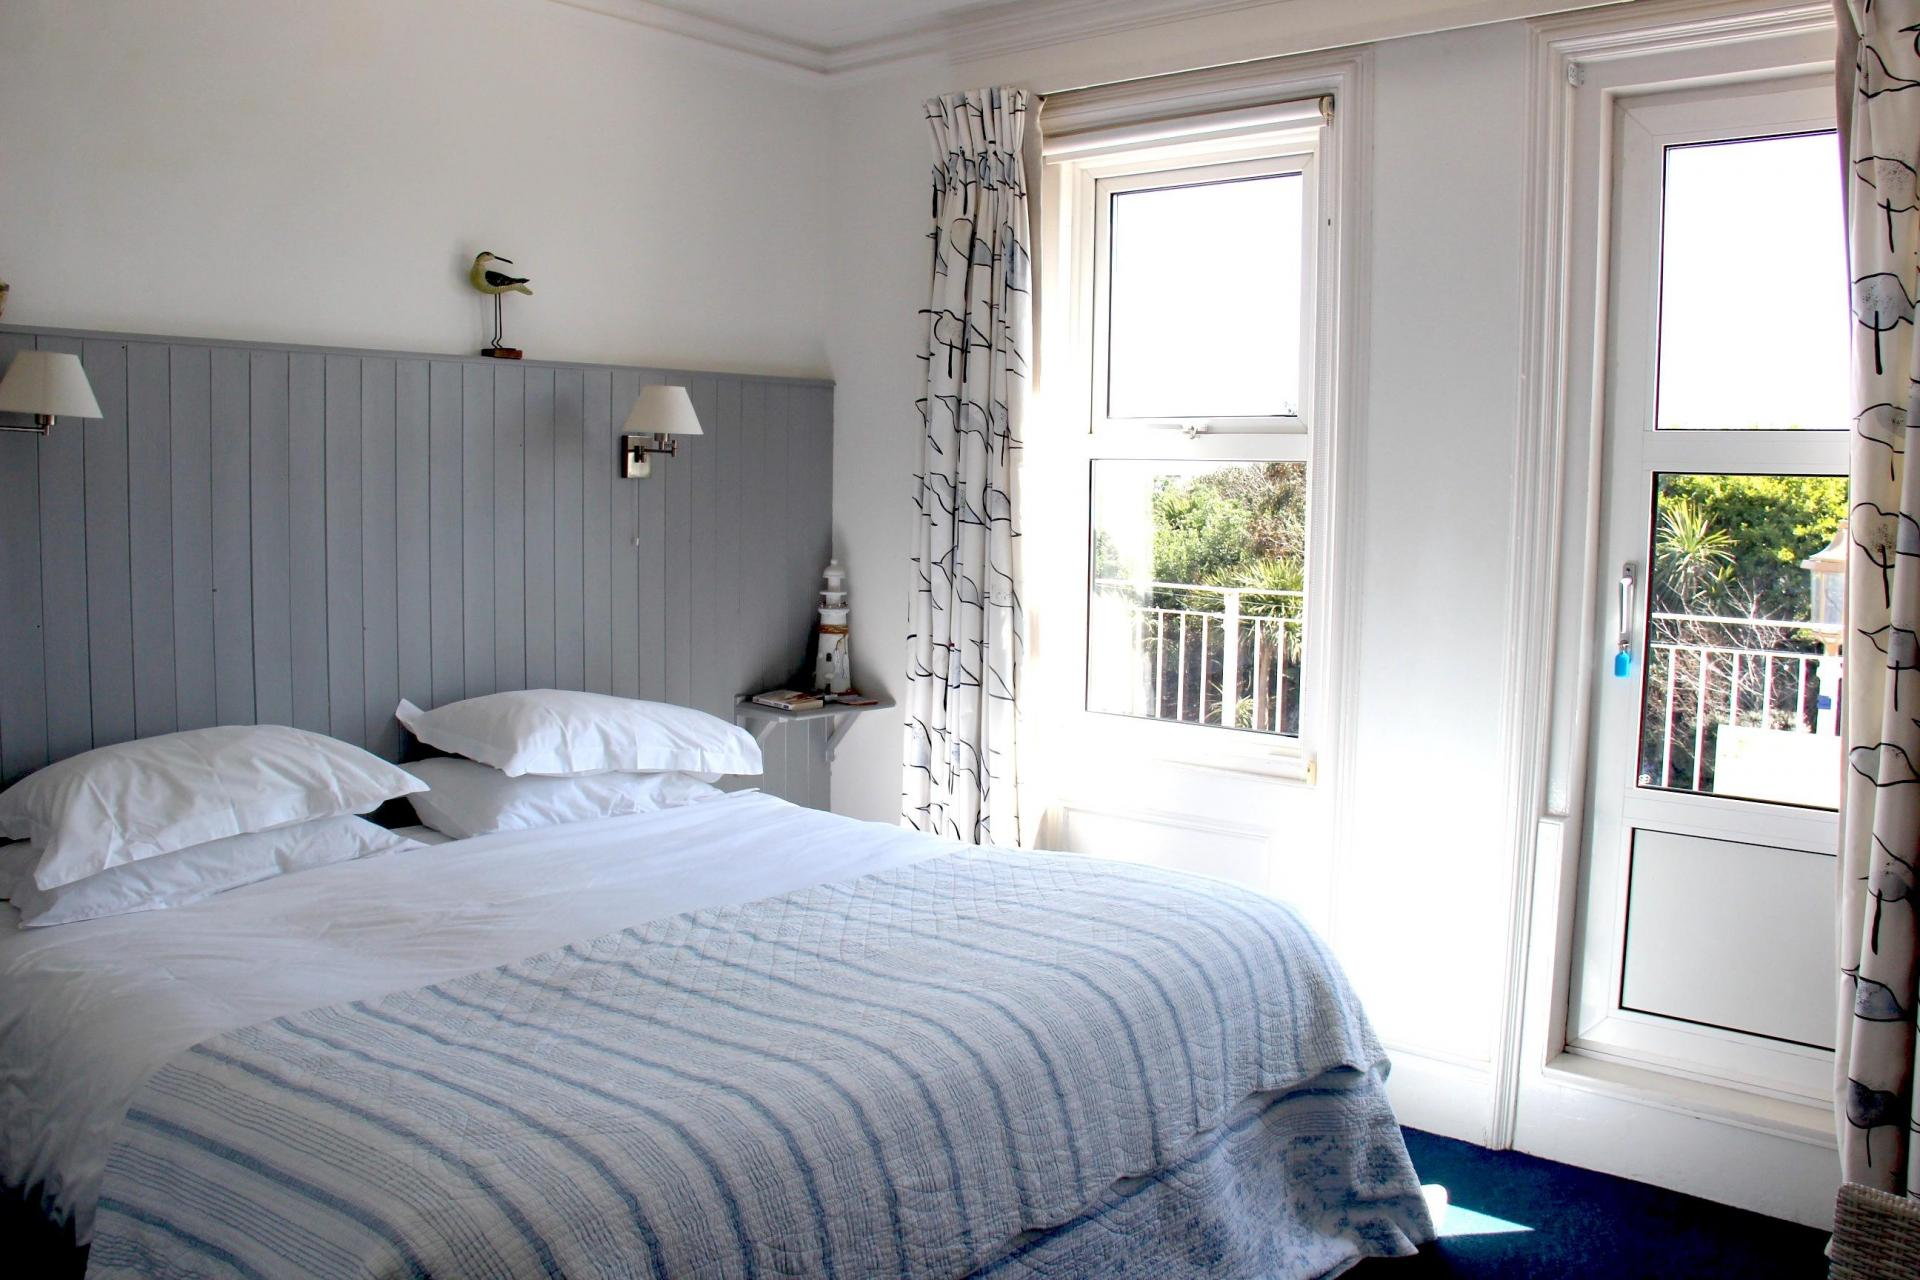 Deluxe Double Or Twin Room With Balcony and Sea View, first floor (inc. Cooked Breakfast and Buffet